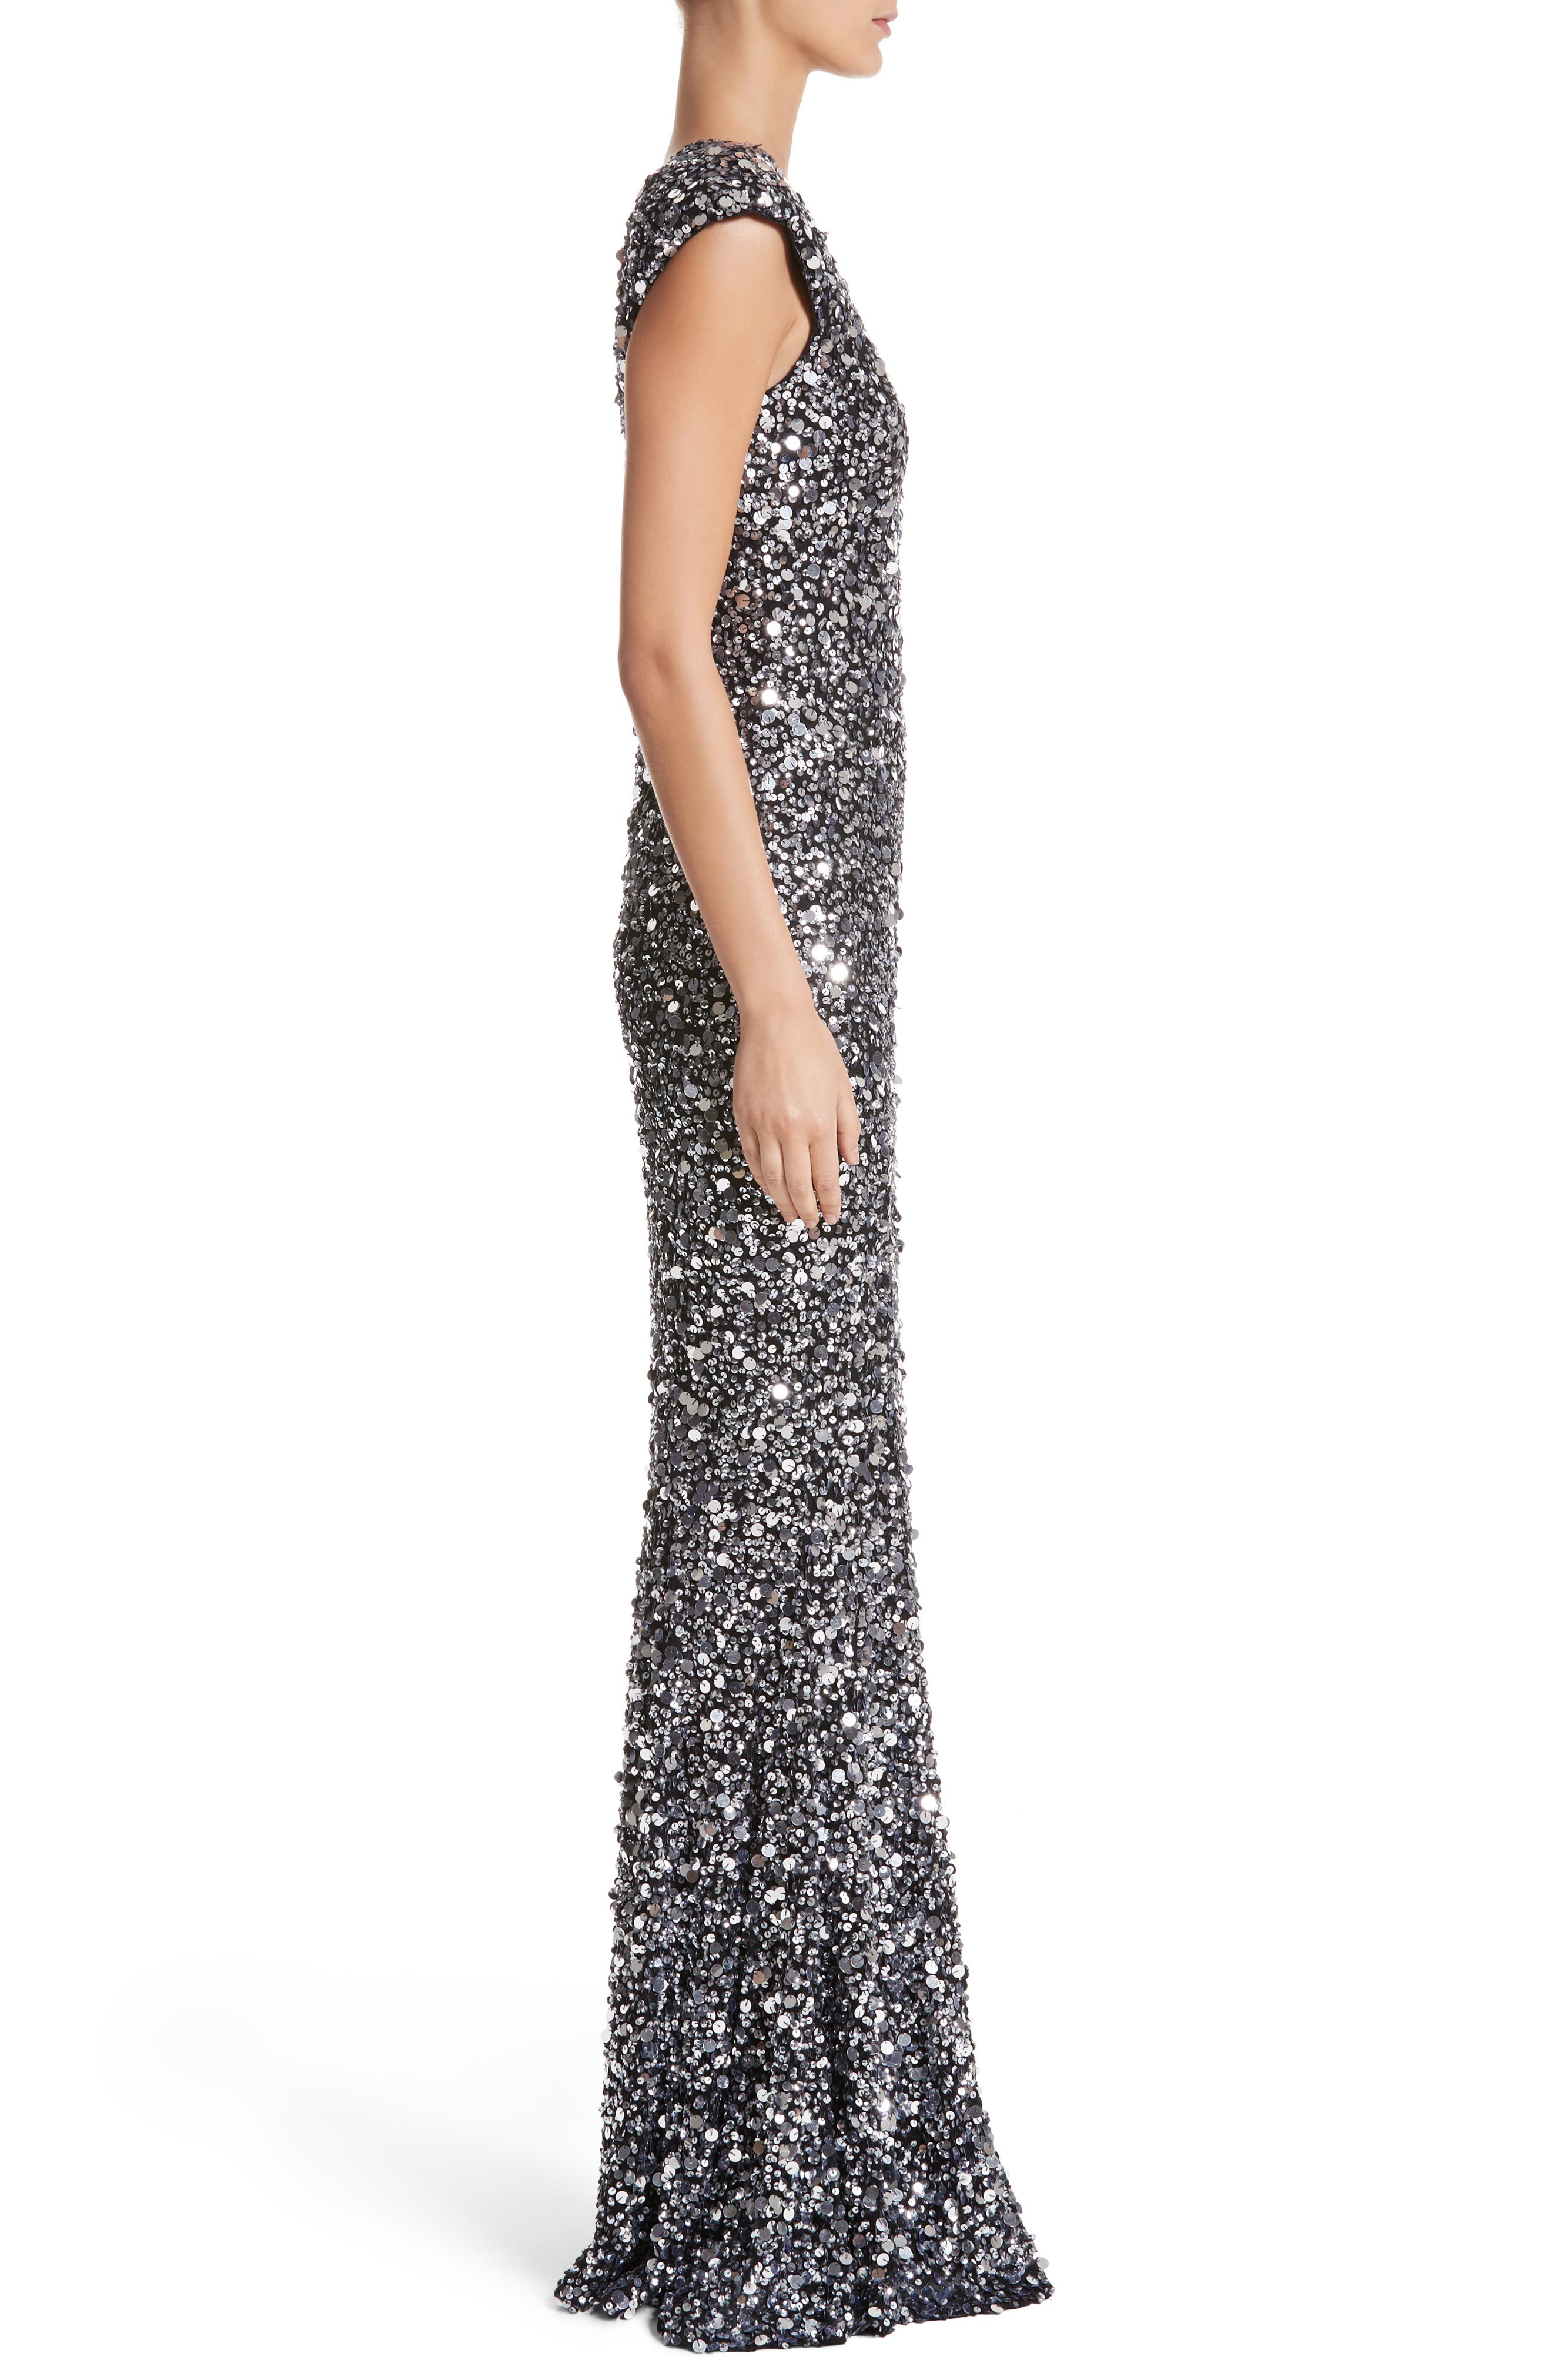 Hand Embellished Sequin Gown,                             Alternate thumbnail 6, color,                             Black/ Silver